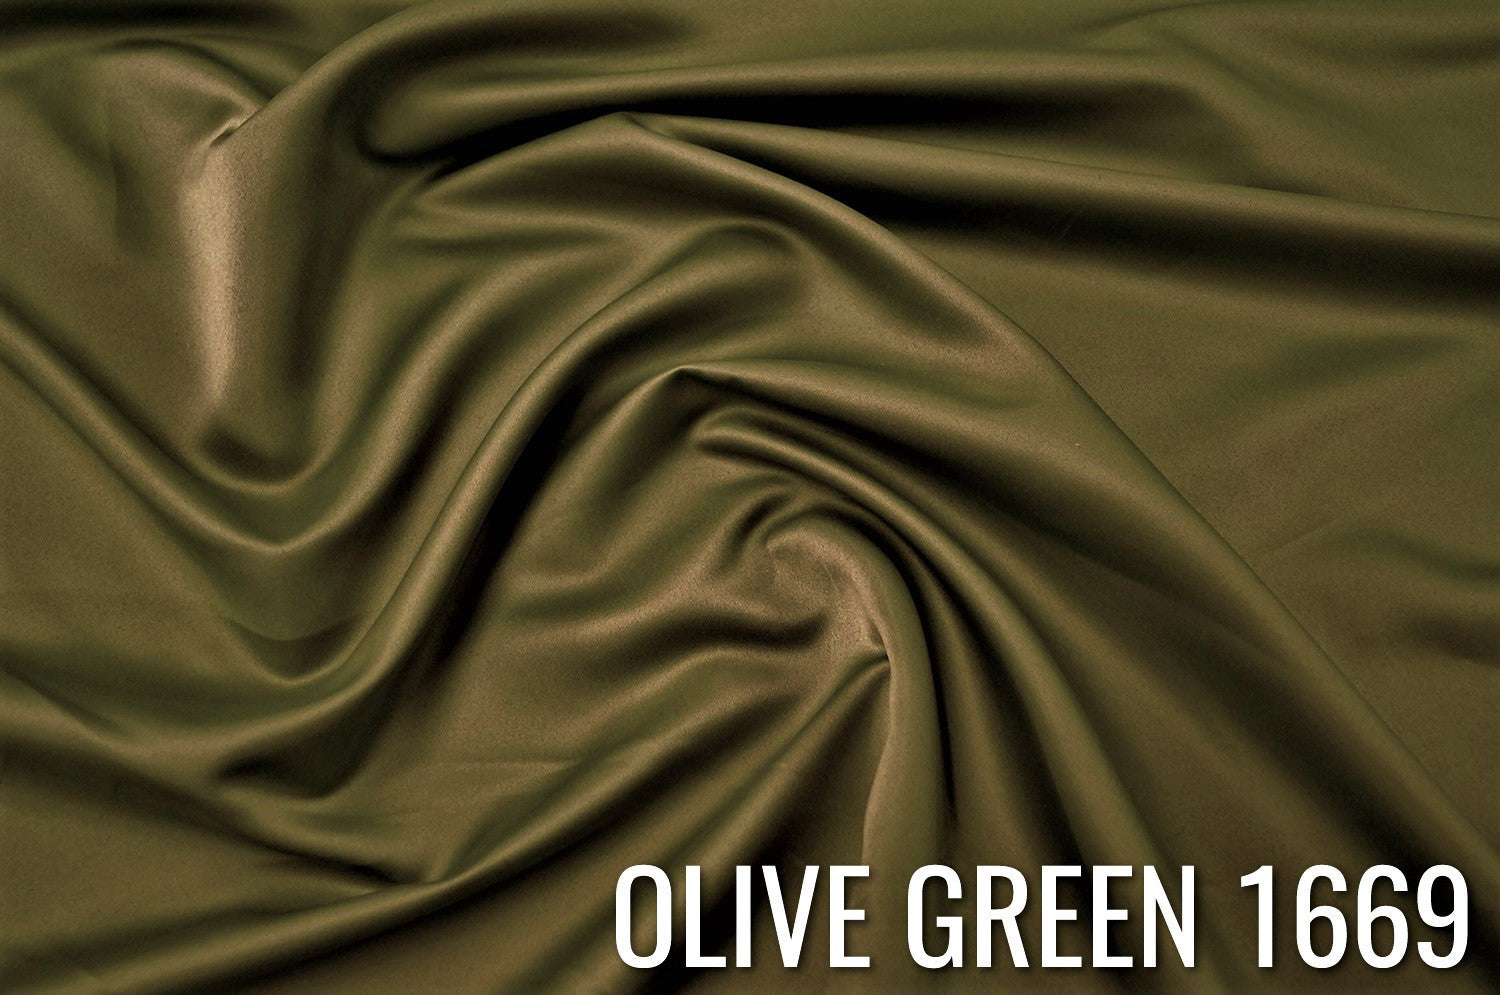 OLIVE GREEN 1669